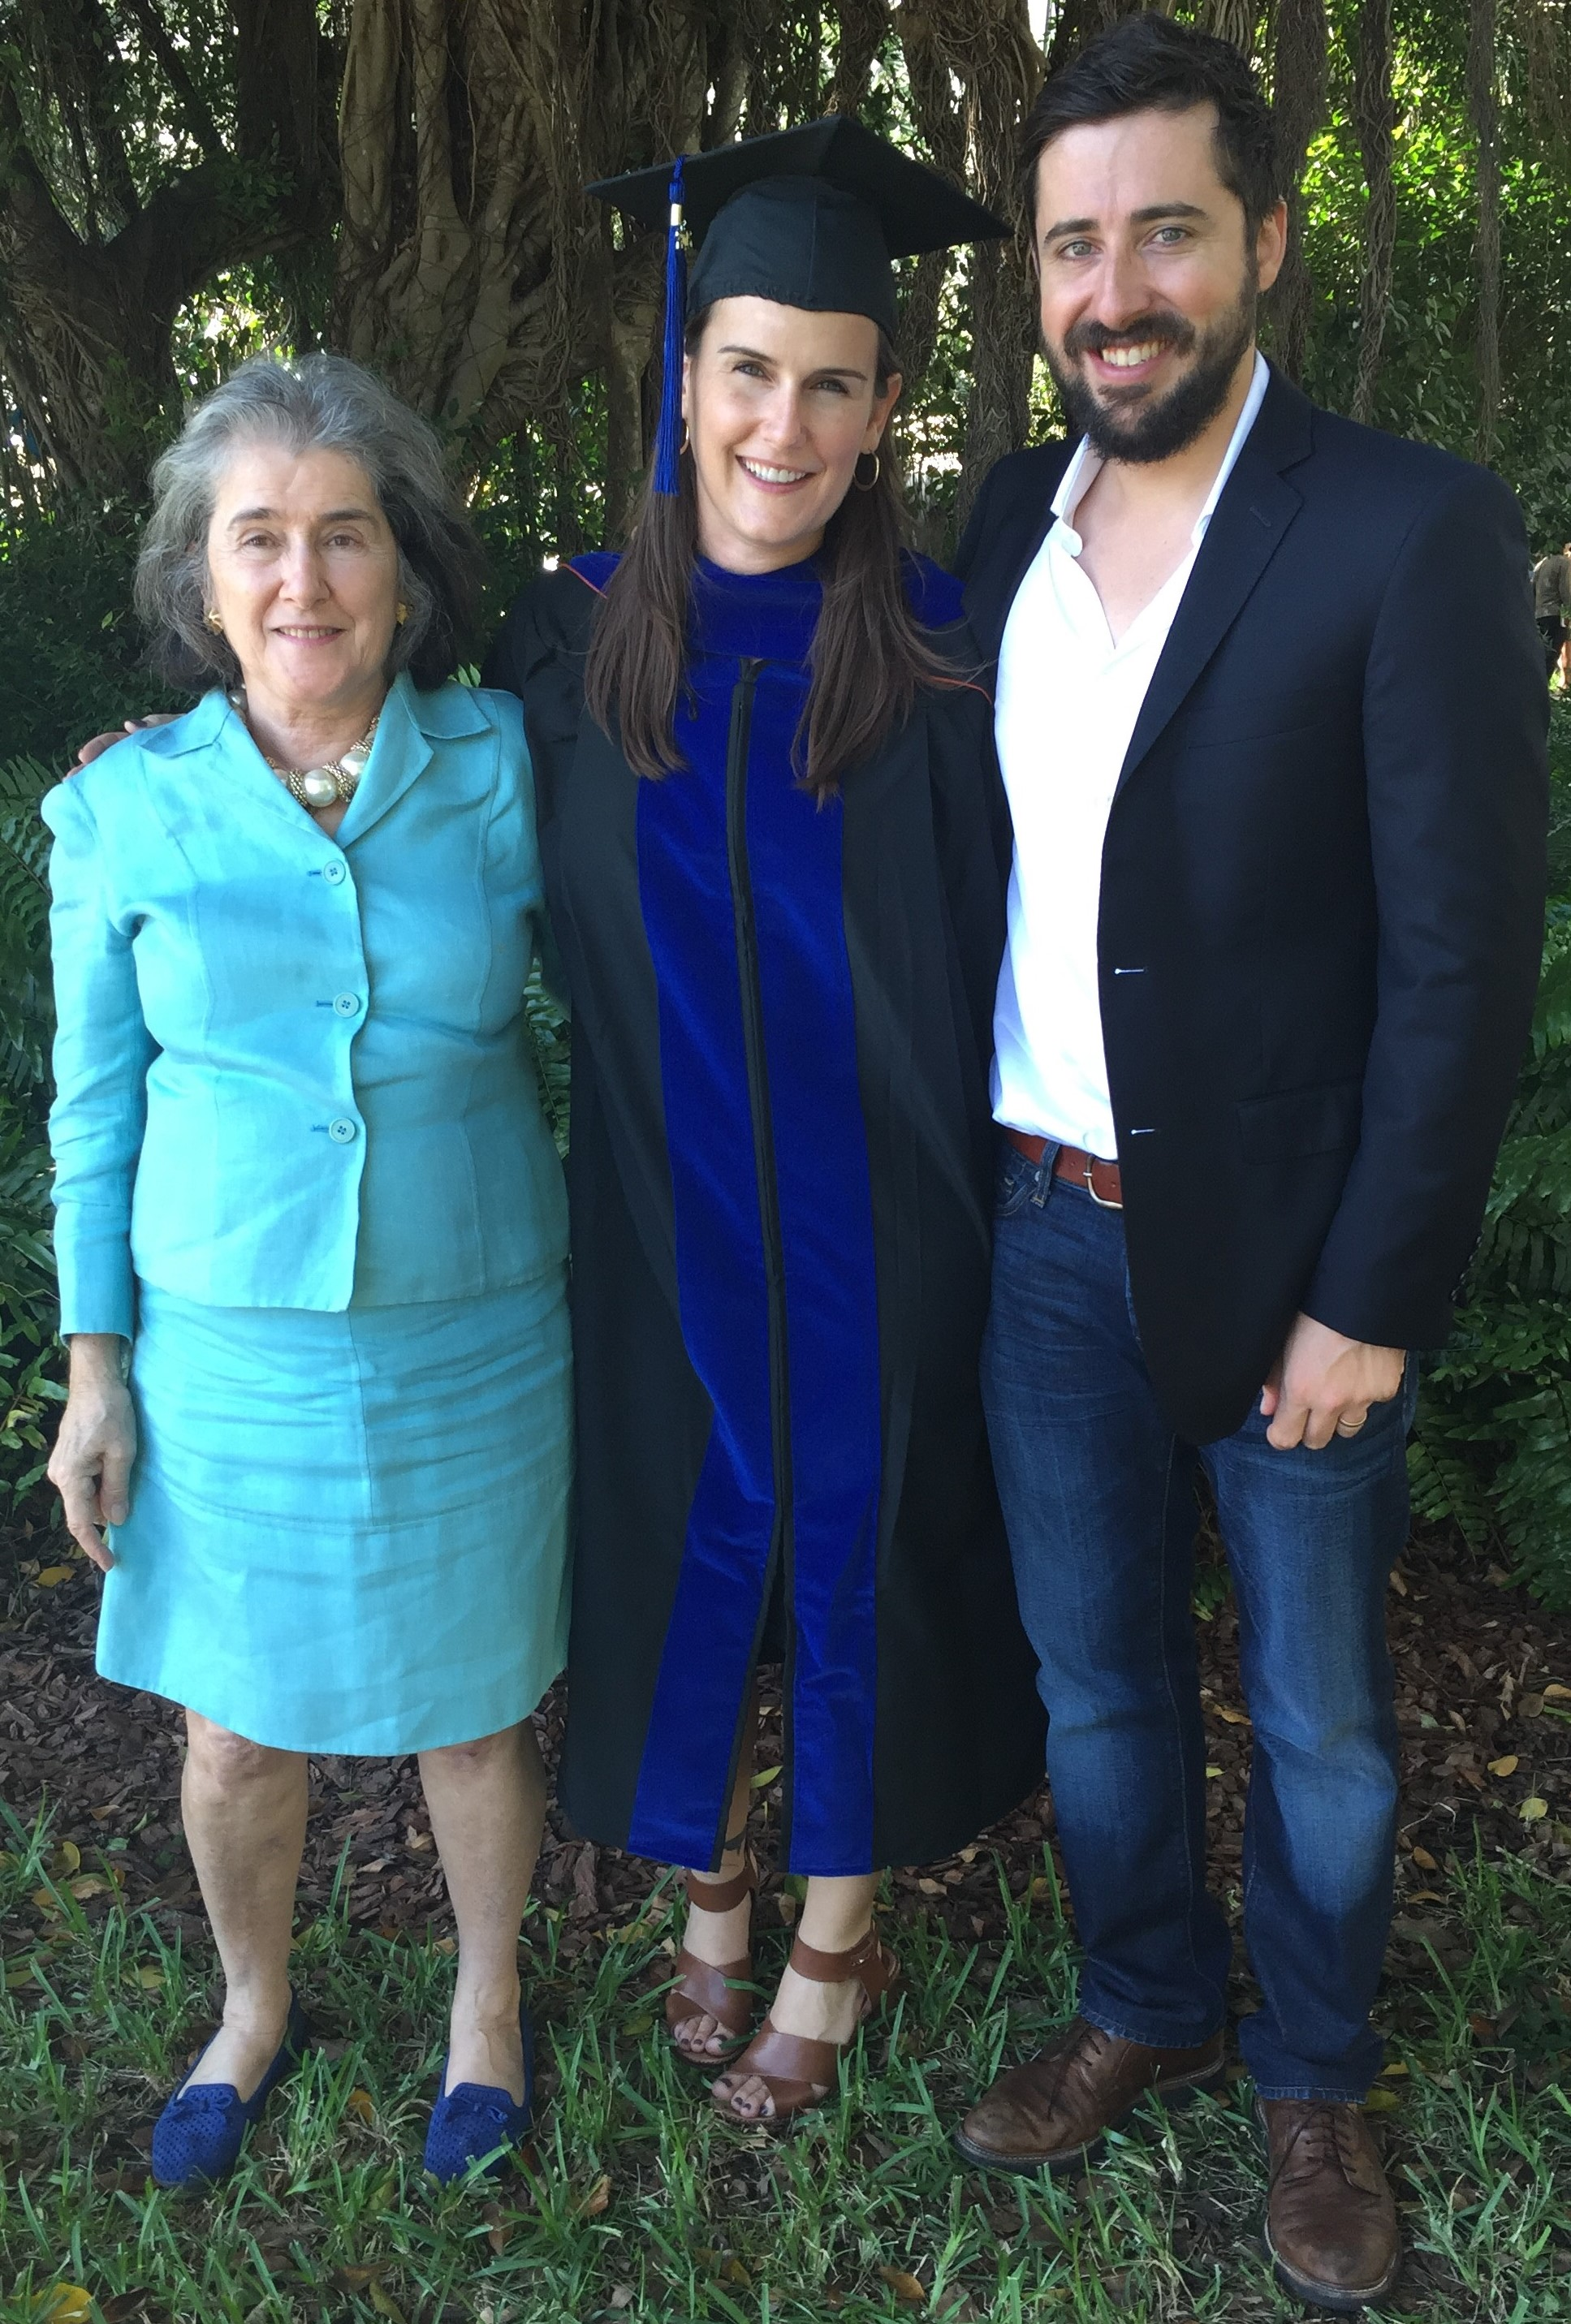 Francesca (center) with her mom (right) and husband (left) at her Ph.D. graduation ceremony